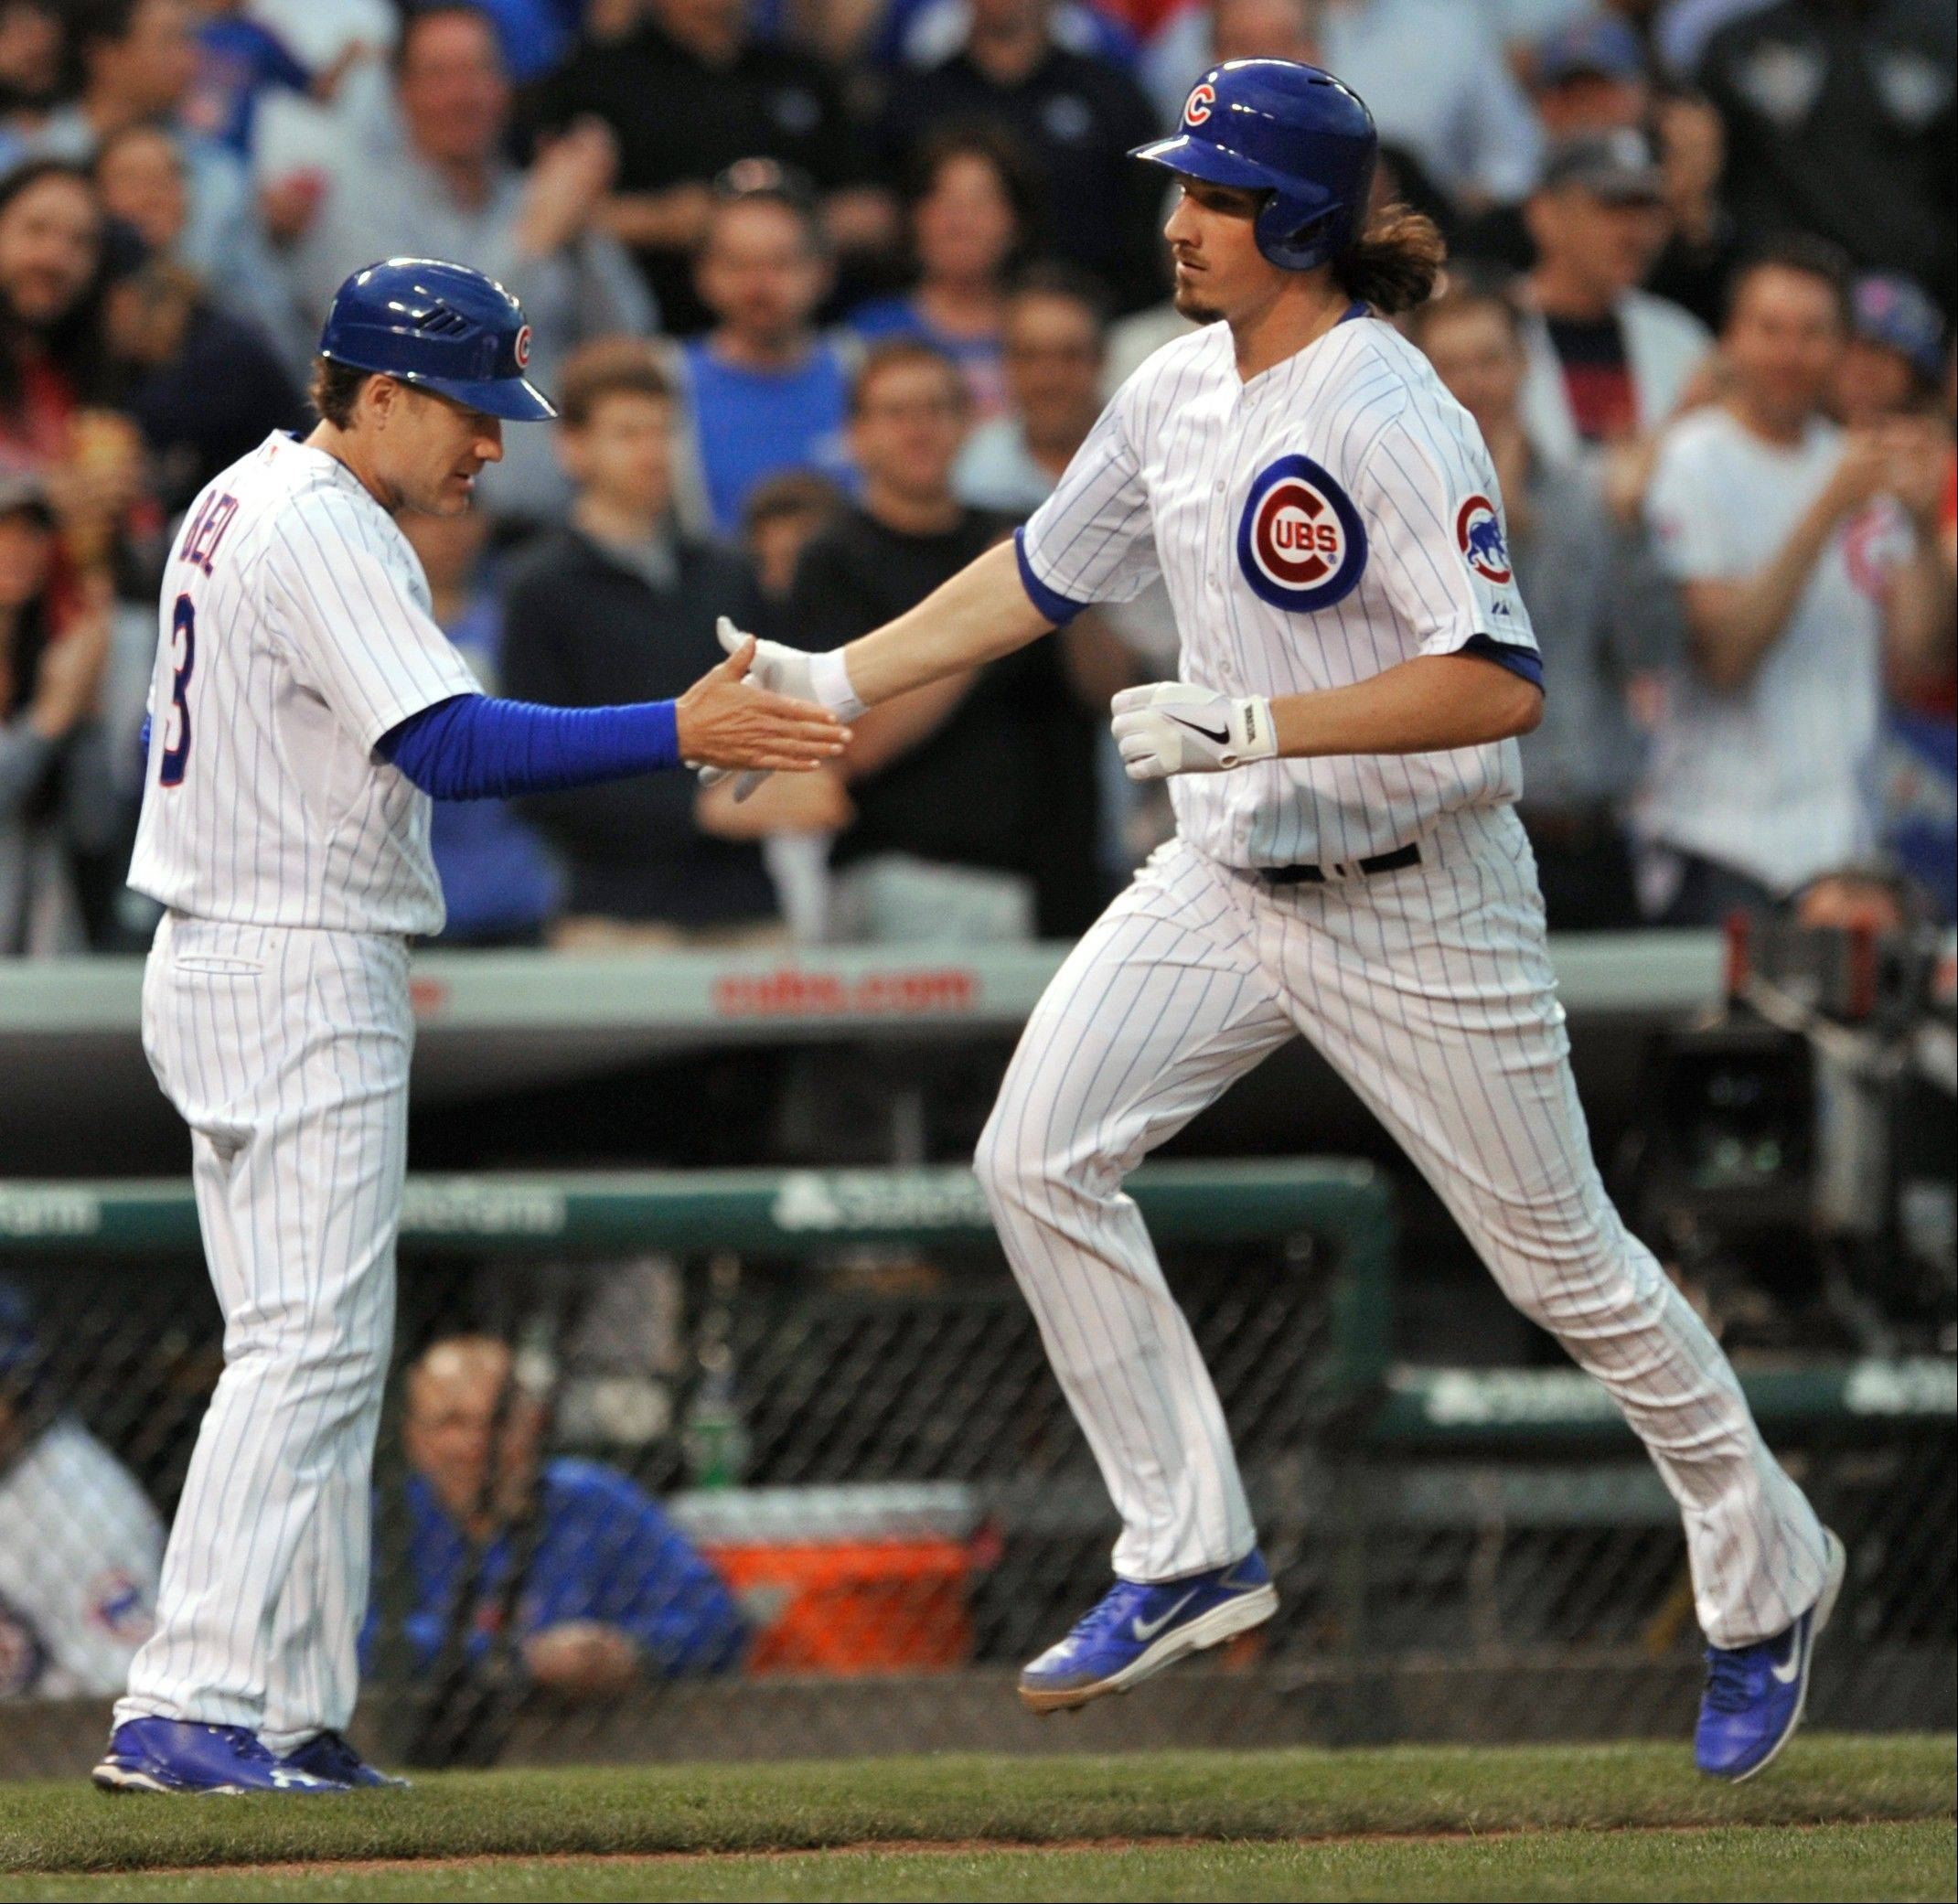 The Cubs� Jeff Samardzija, right, celebrates with third-base coach David Bell after hitting a 2-run home run during the second inning Wednesday night against the Colorado Rockies at Wrigley Field. The Cubs won 6-3.